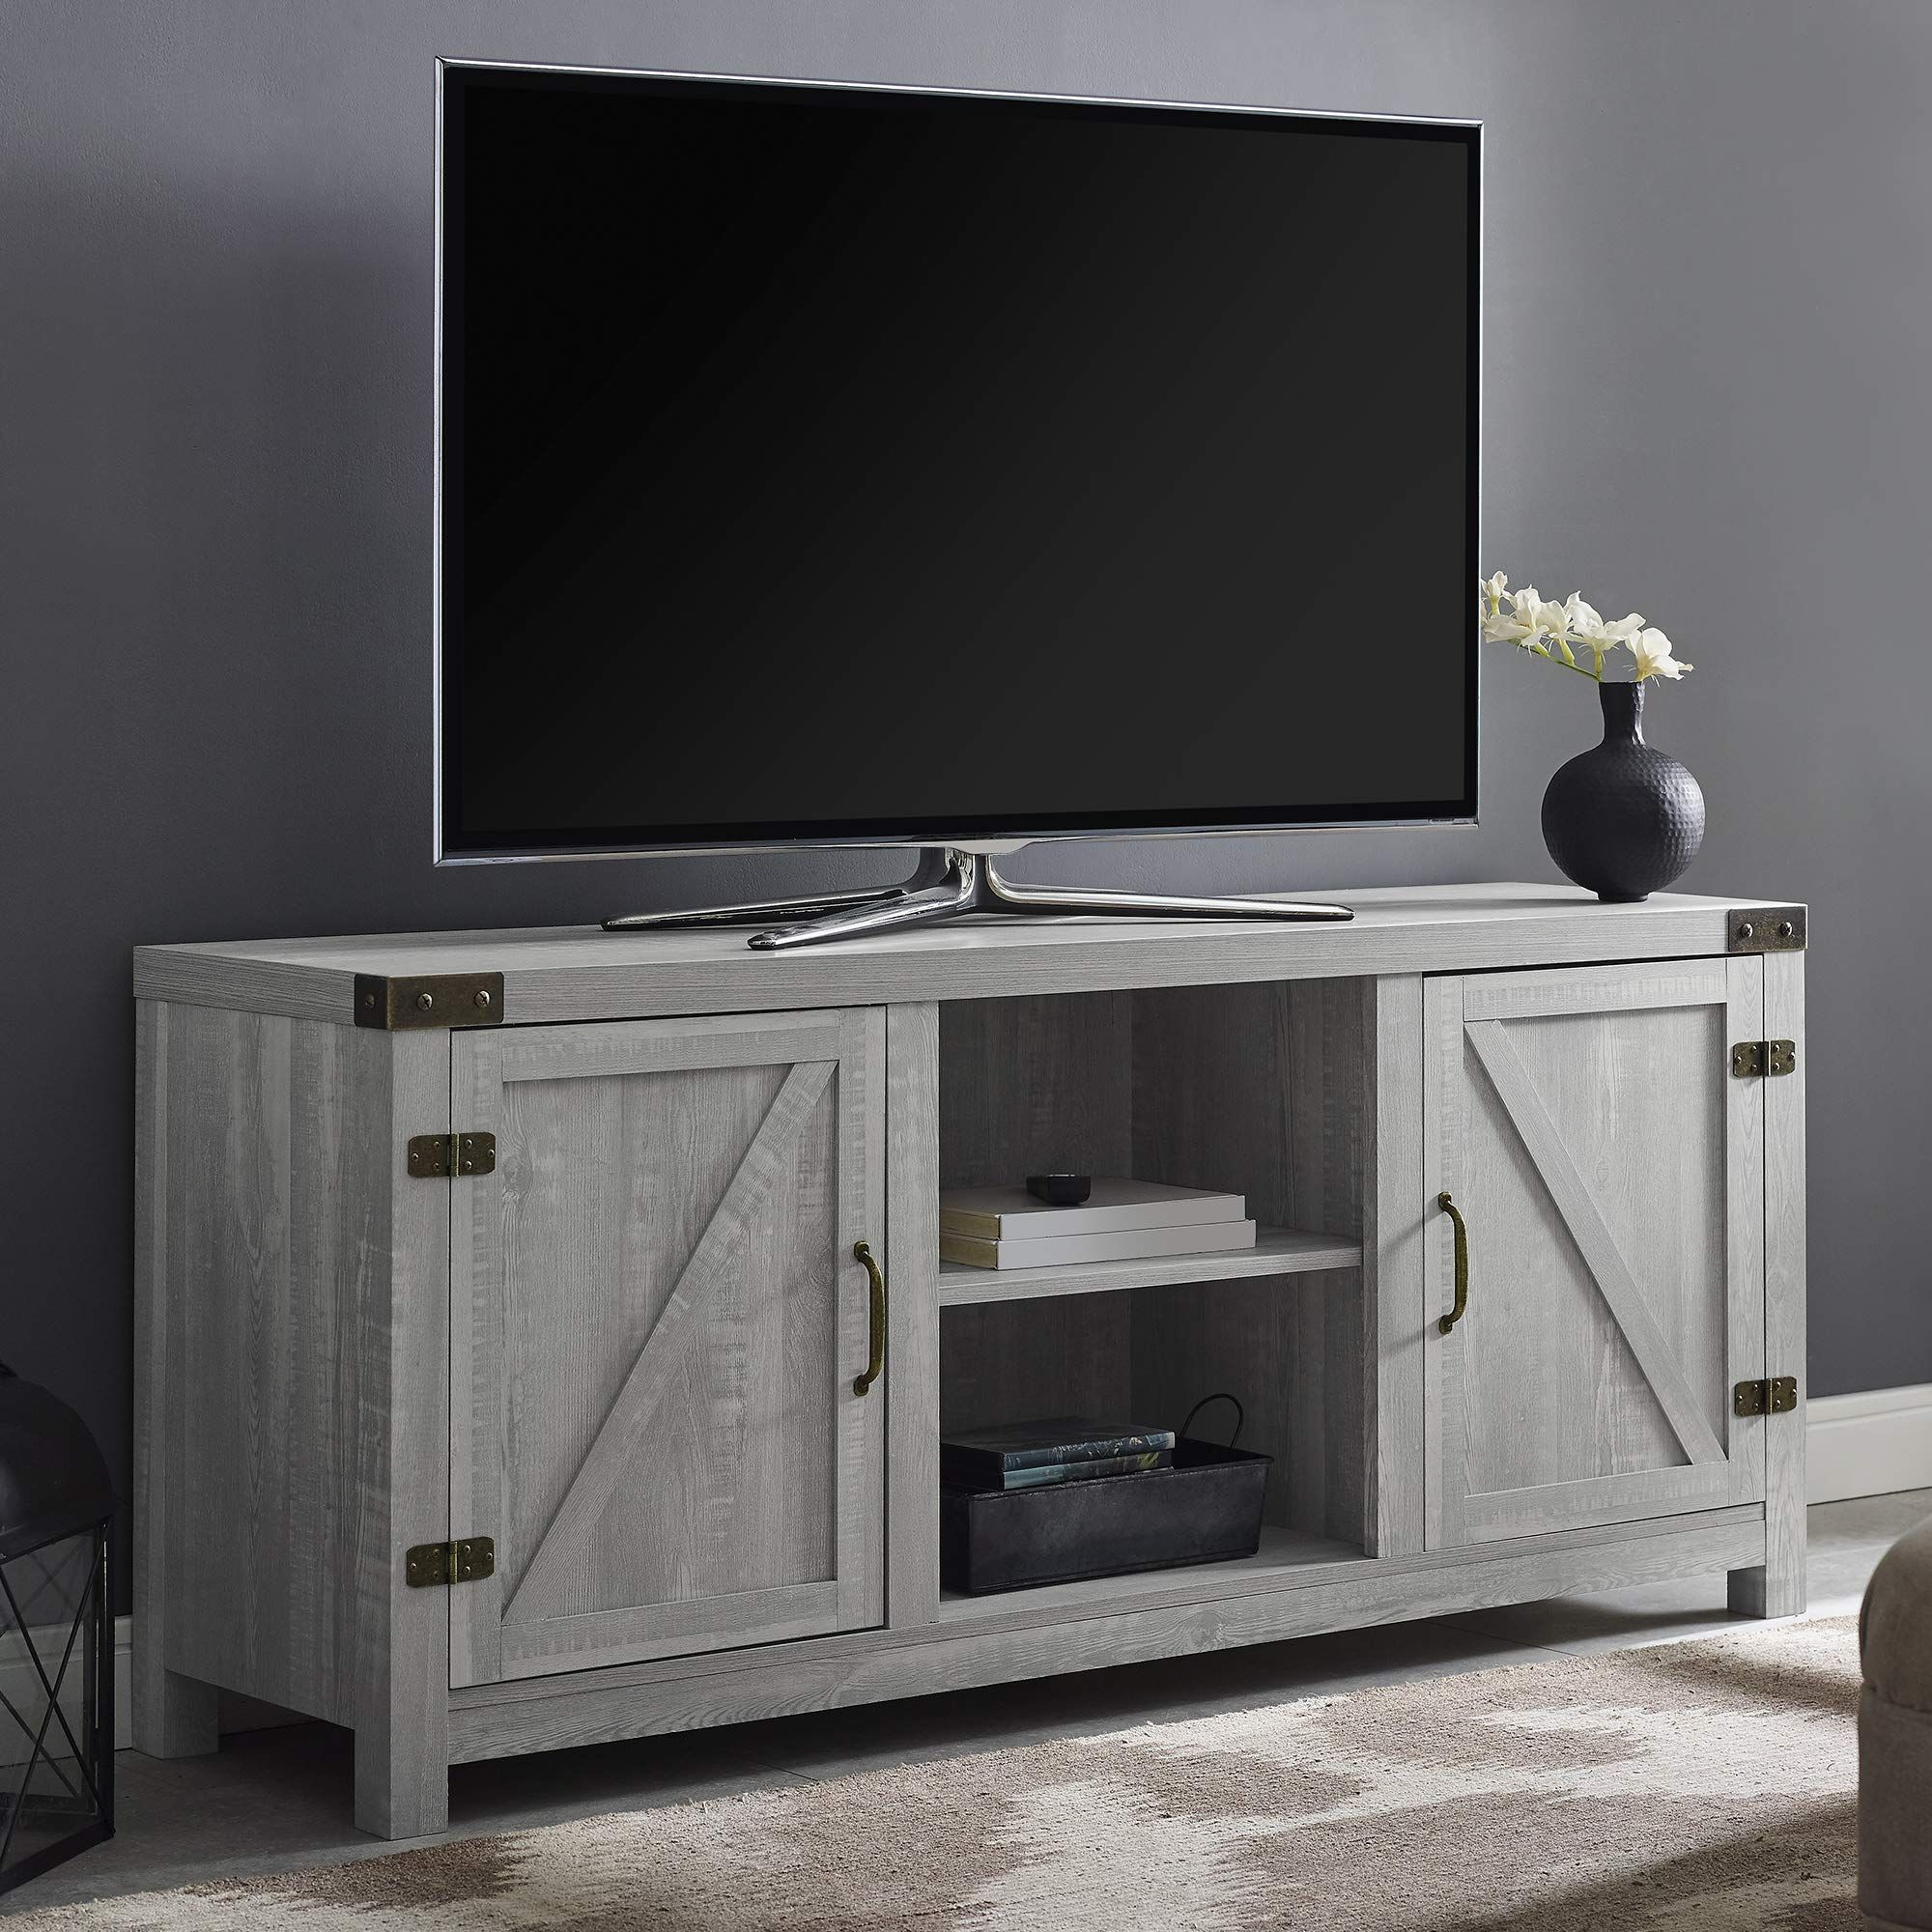 We Furniture Az58bdsdst Tv Stand 58 Stone Grey Amazon With